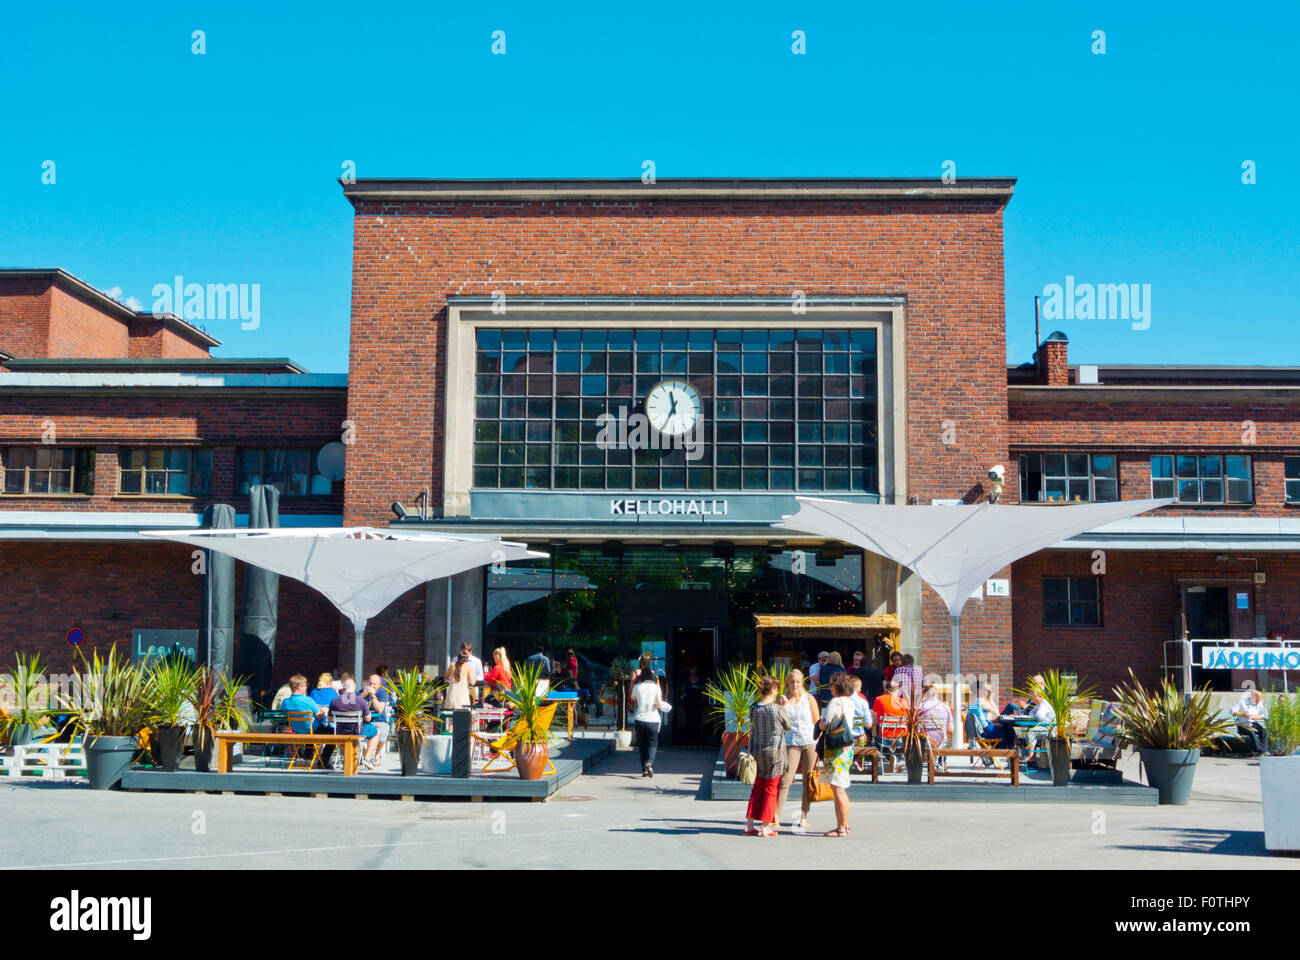 Teurastamo (1933), former abattoir now converted into restaurants and events spaces, Hermanni disttrict, Helsinki, Stock Photo